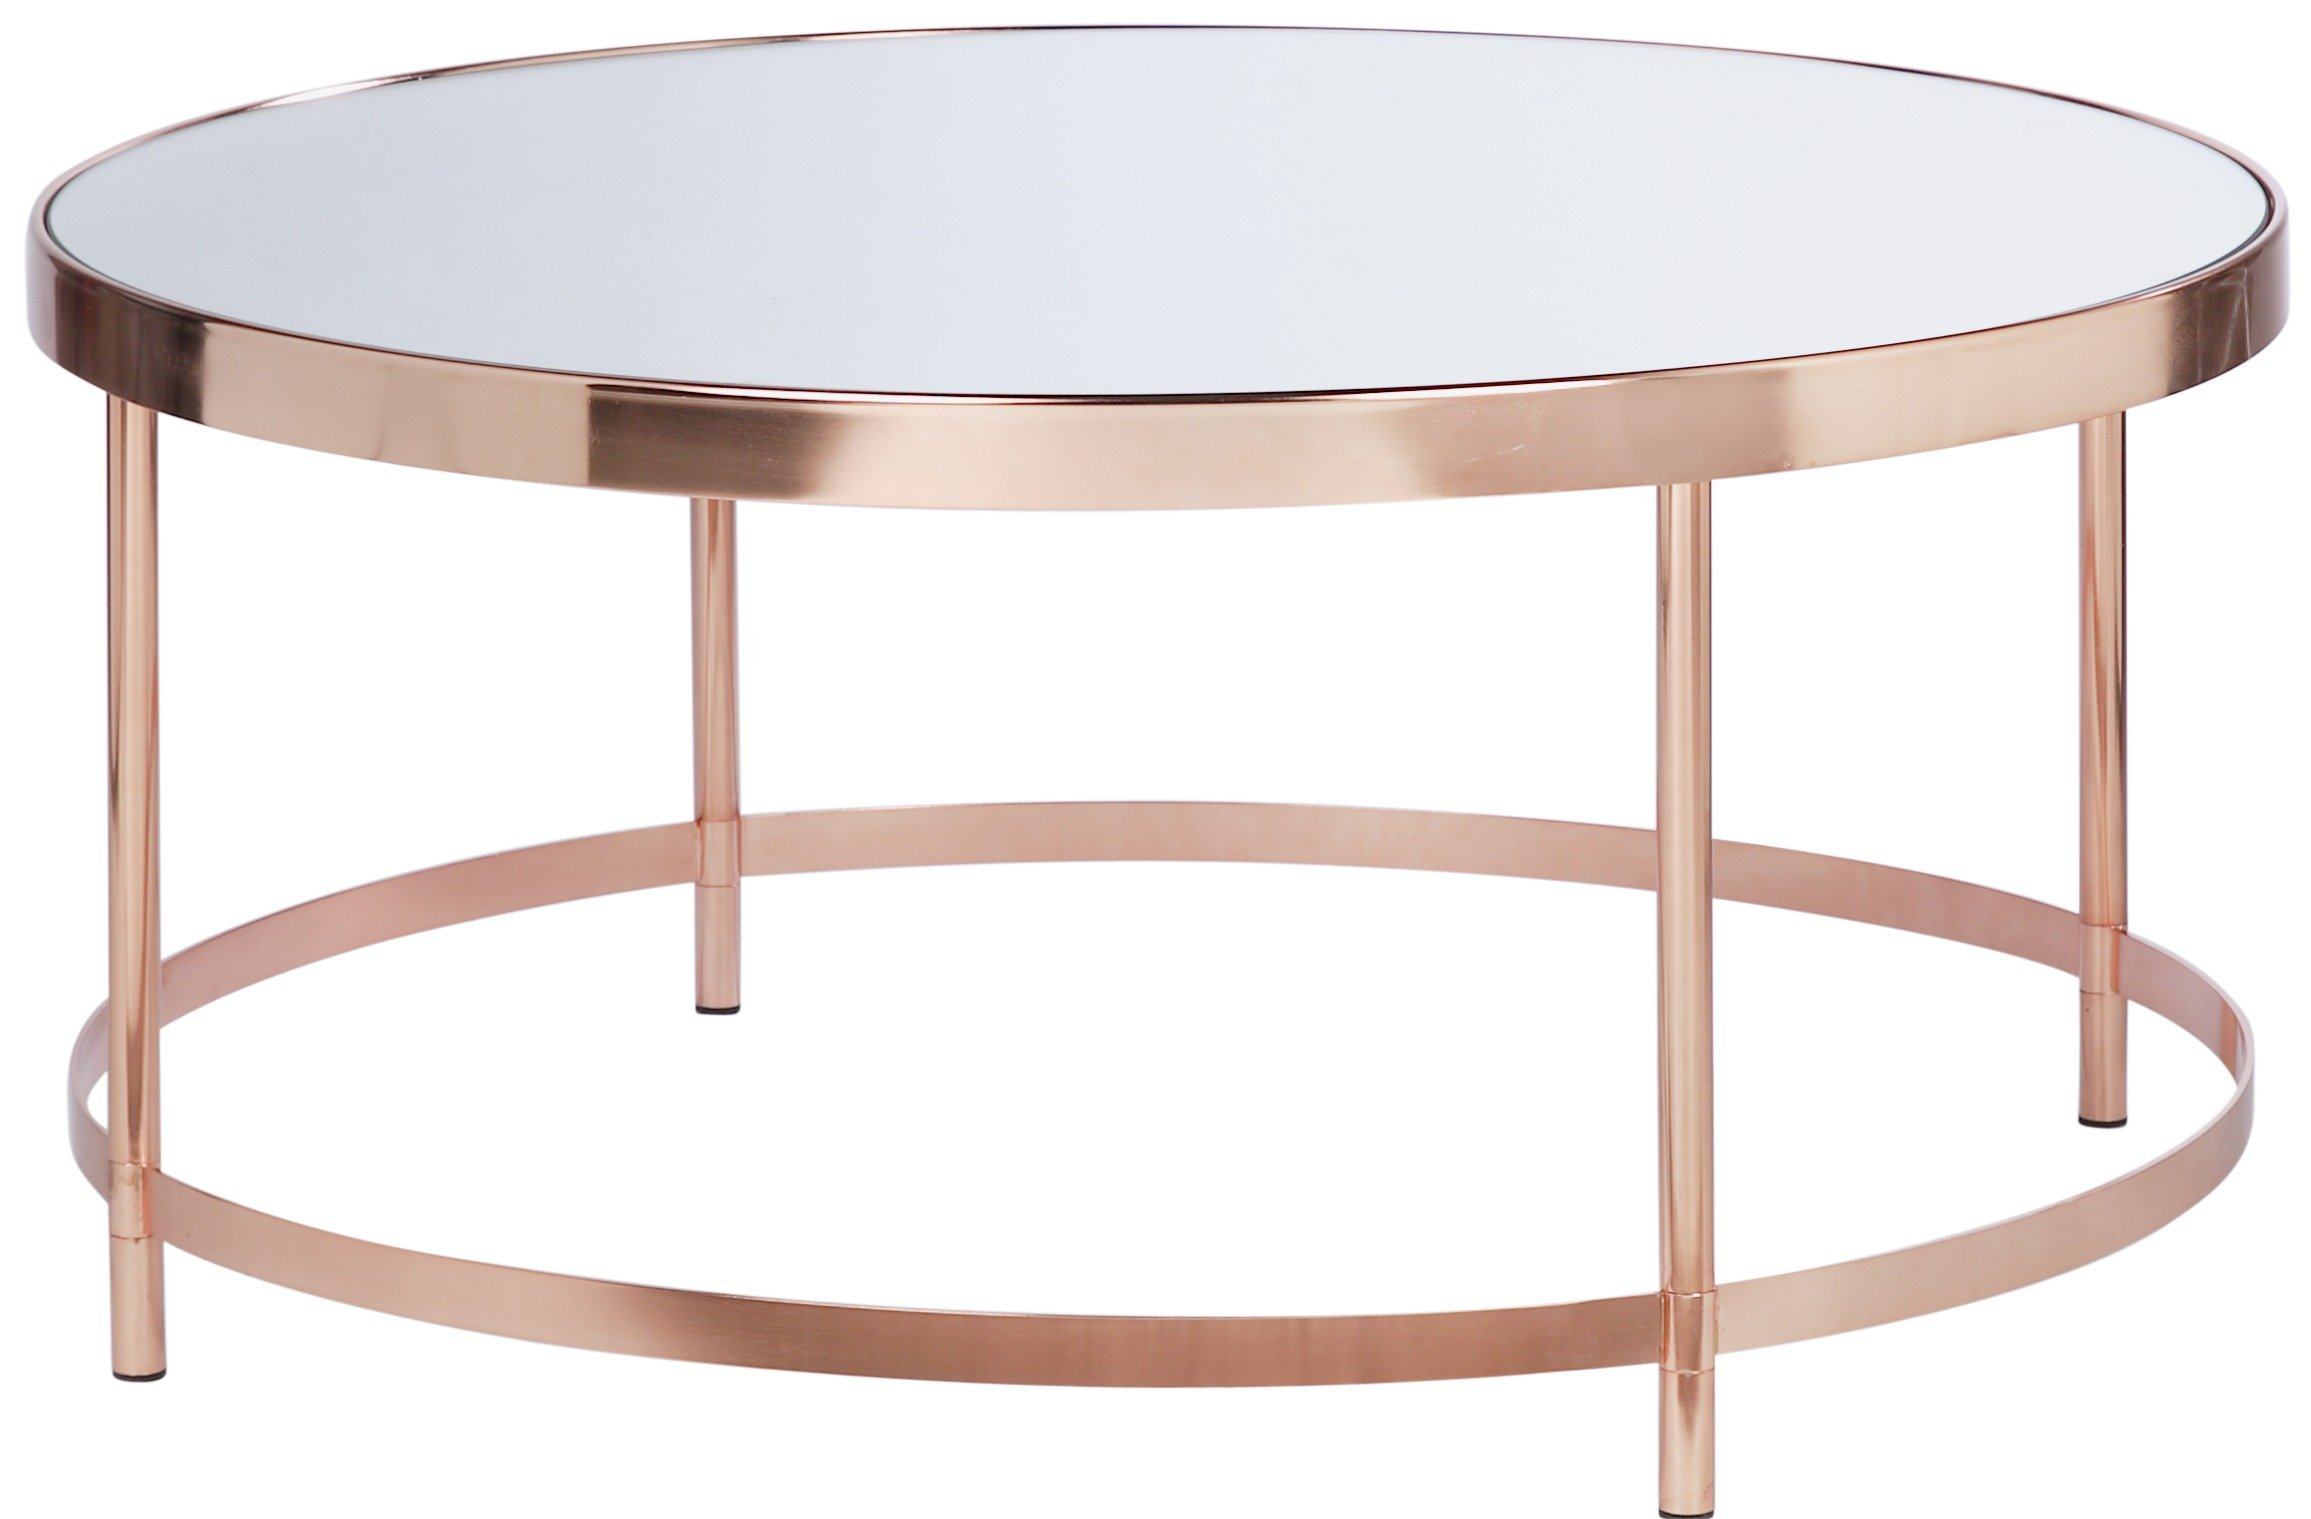 Buy Collection Round Mirrored Top Coffee Table Copper Plated at